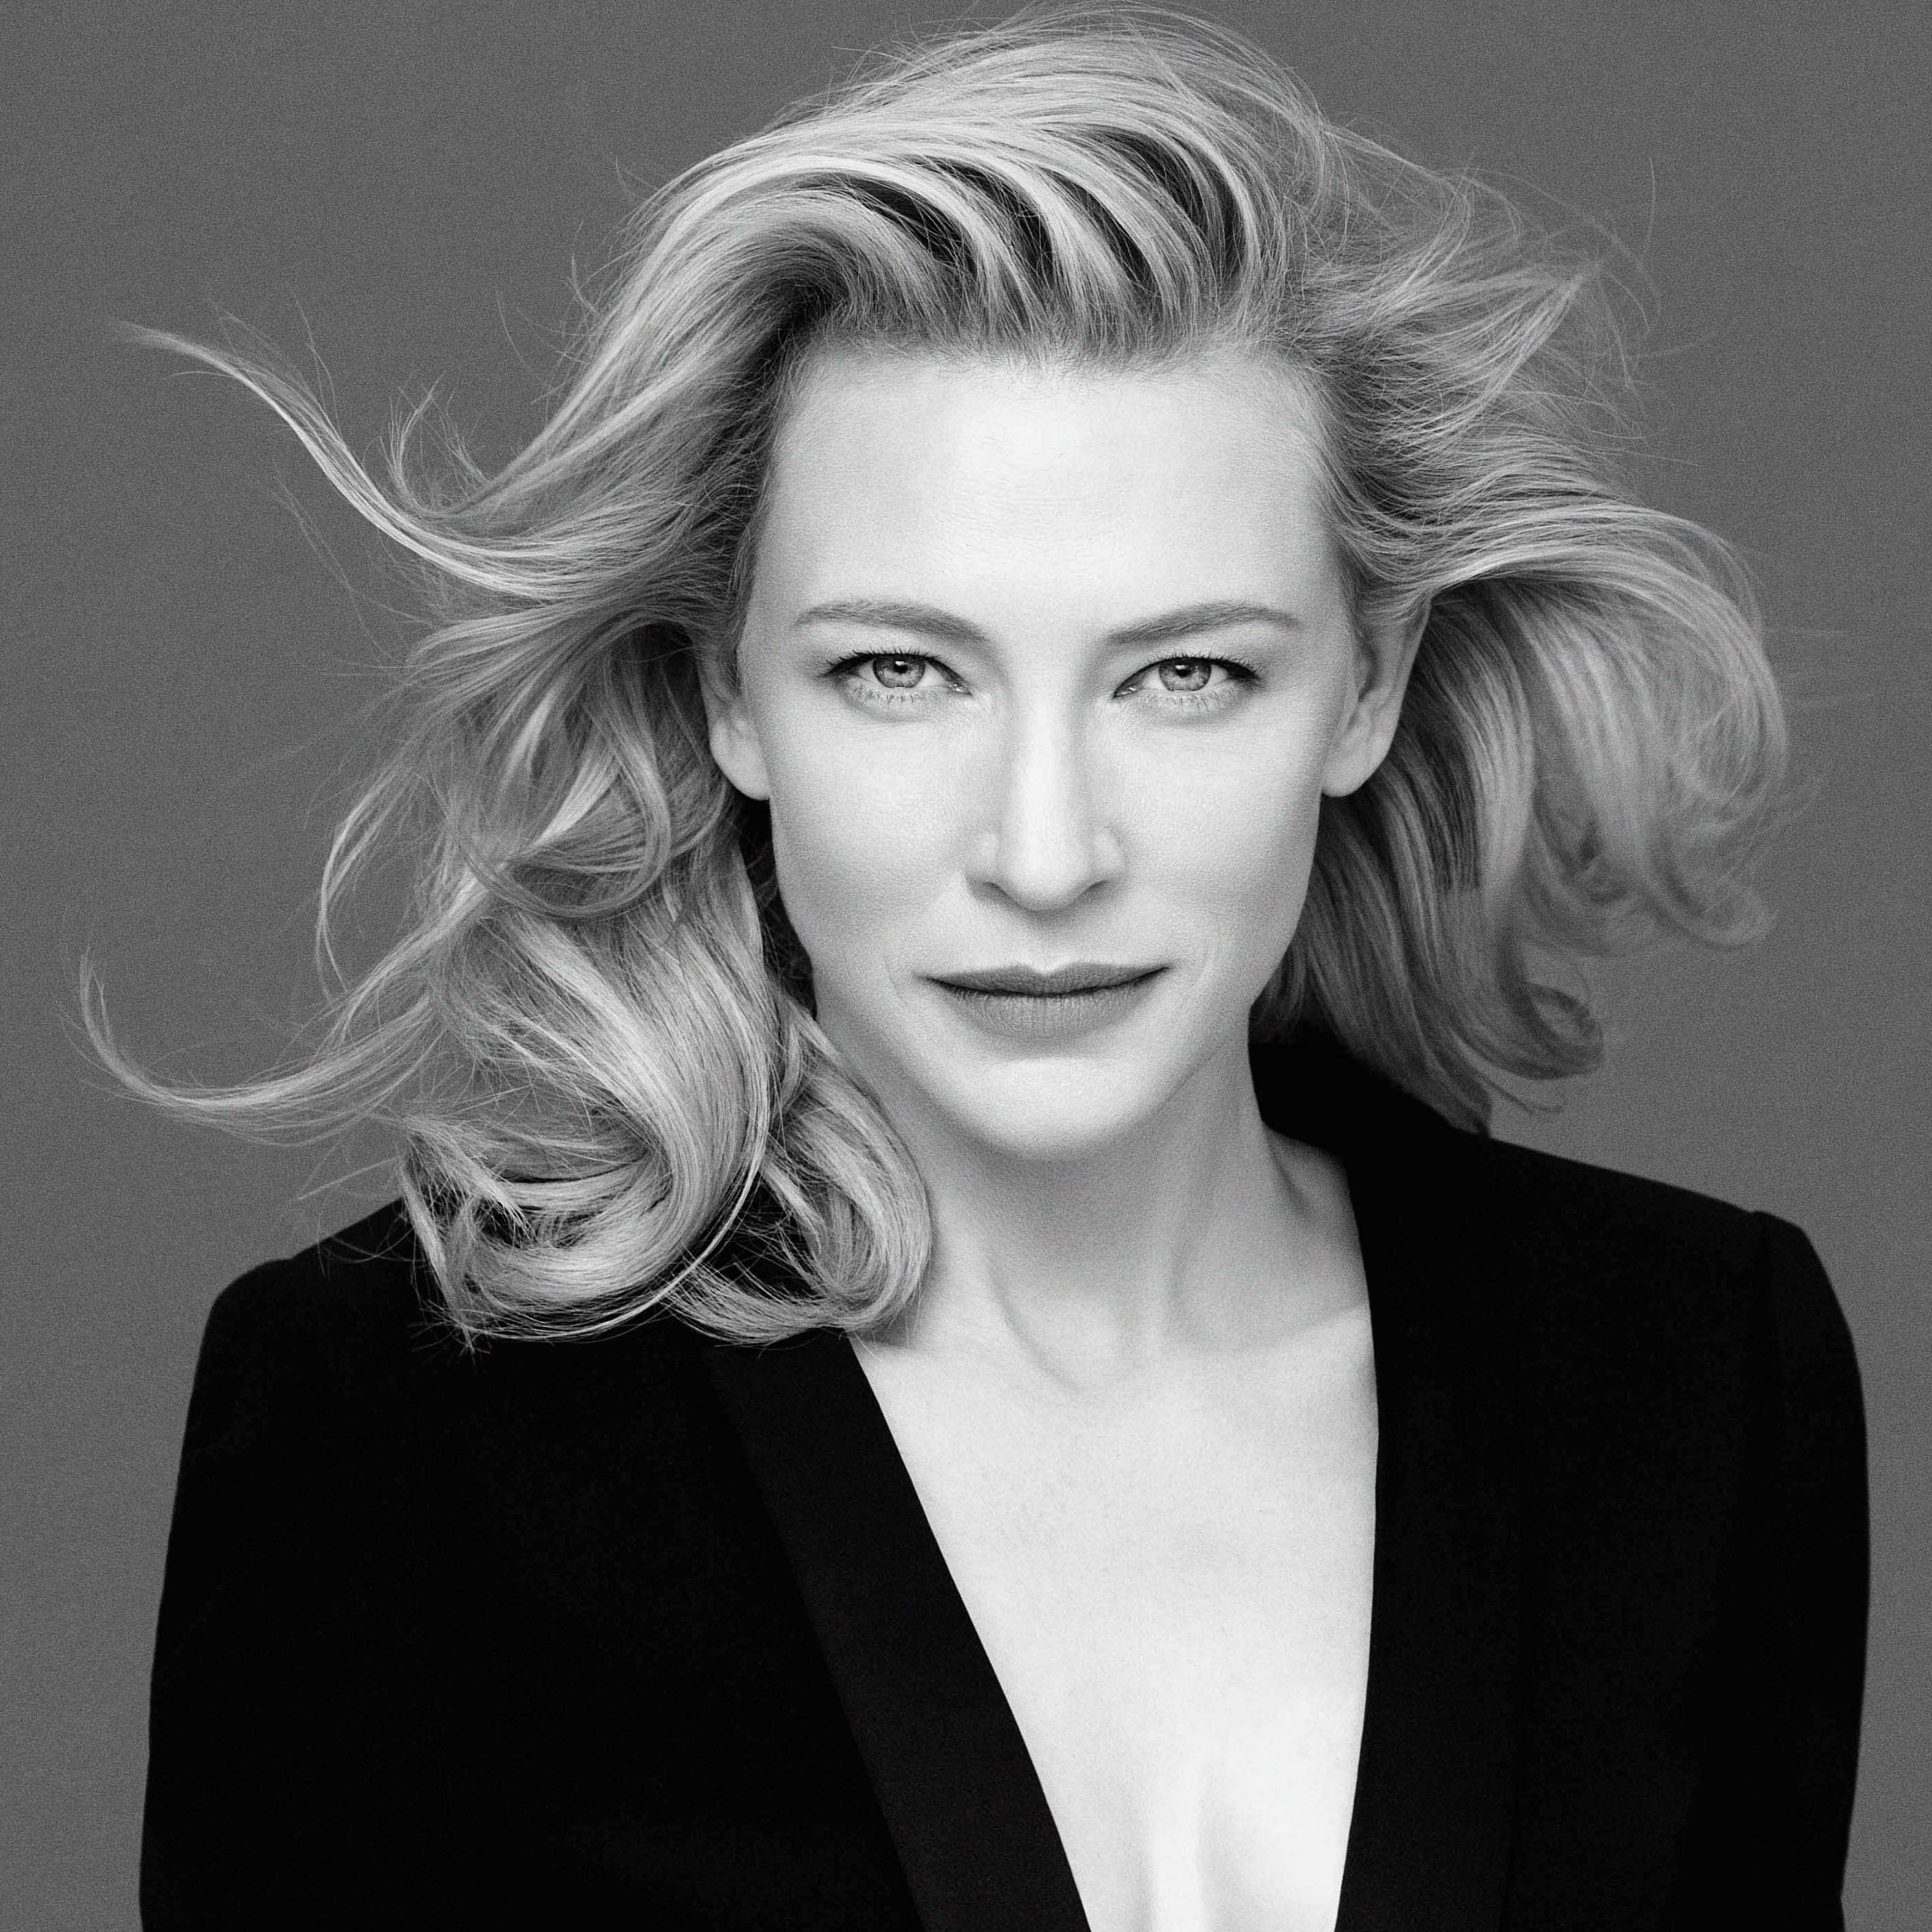 Cate Blanchett Backgrounds